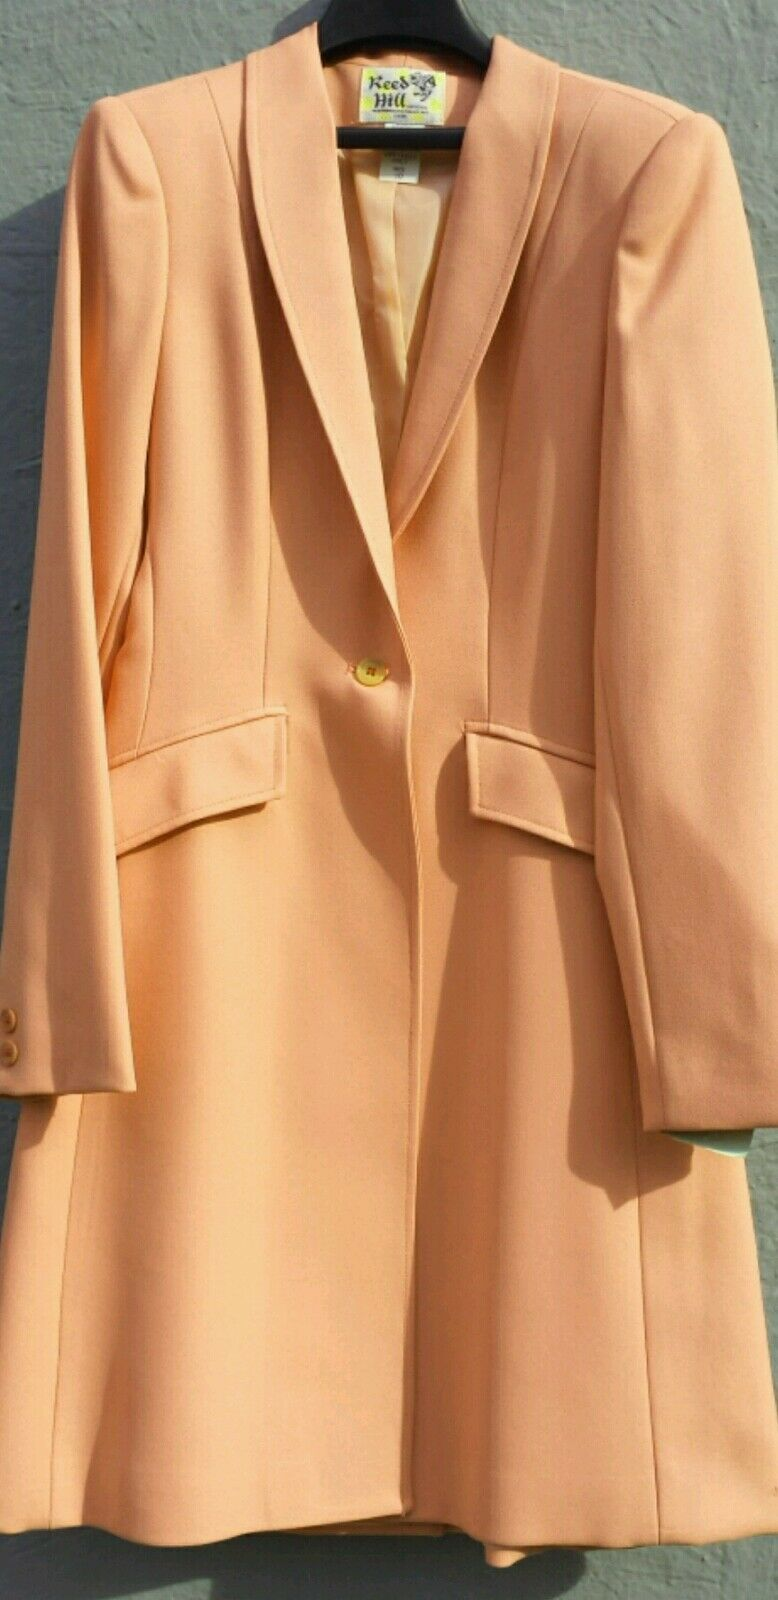 Reed Hill Ladies Saddleseat Day  Coat DARK PEACH  Polyester size 10 - USA  all goods are specials